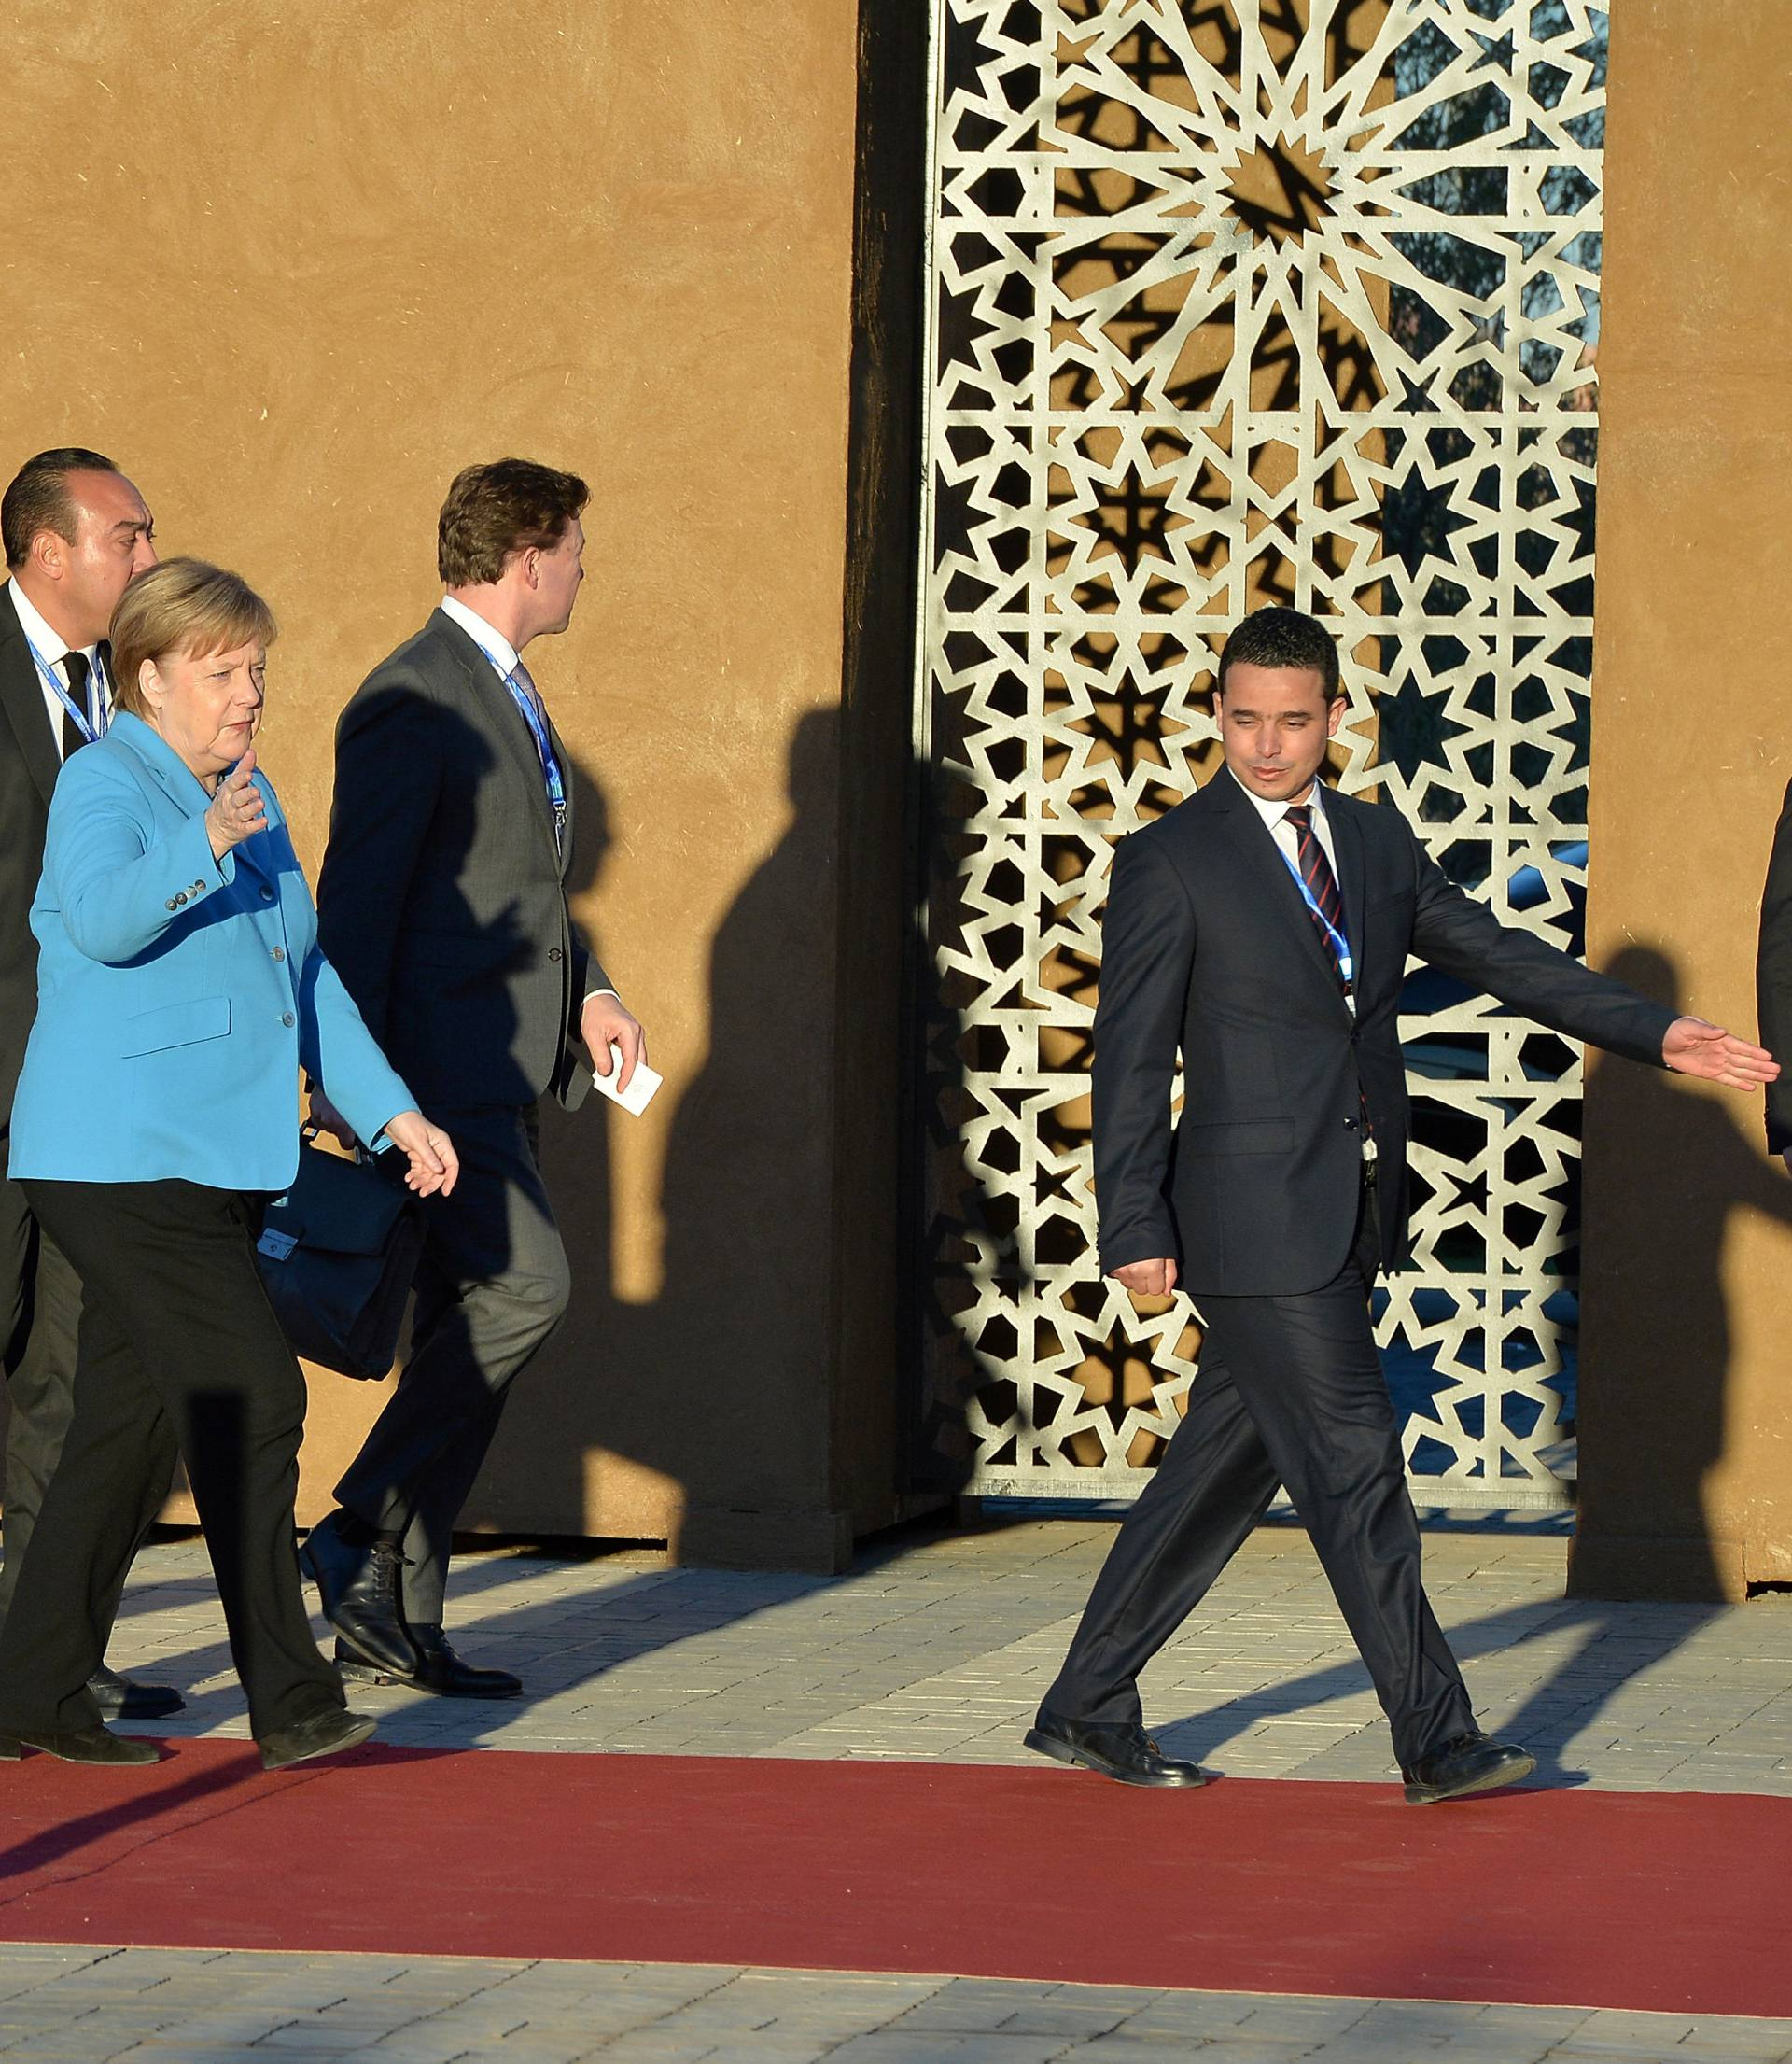 German Chancellor Angela Merkel arrives to the Intergovernmental Conference to Adopt the Global Compact for Safe, Orderly and Regular Migration, in Marrakesh